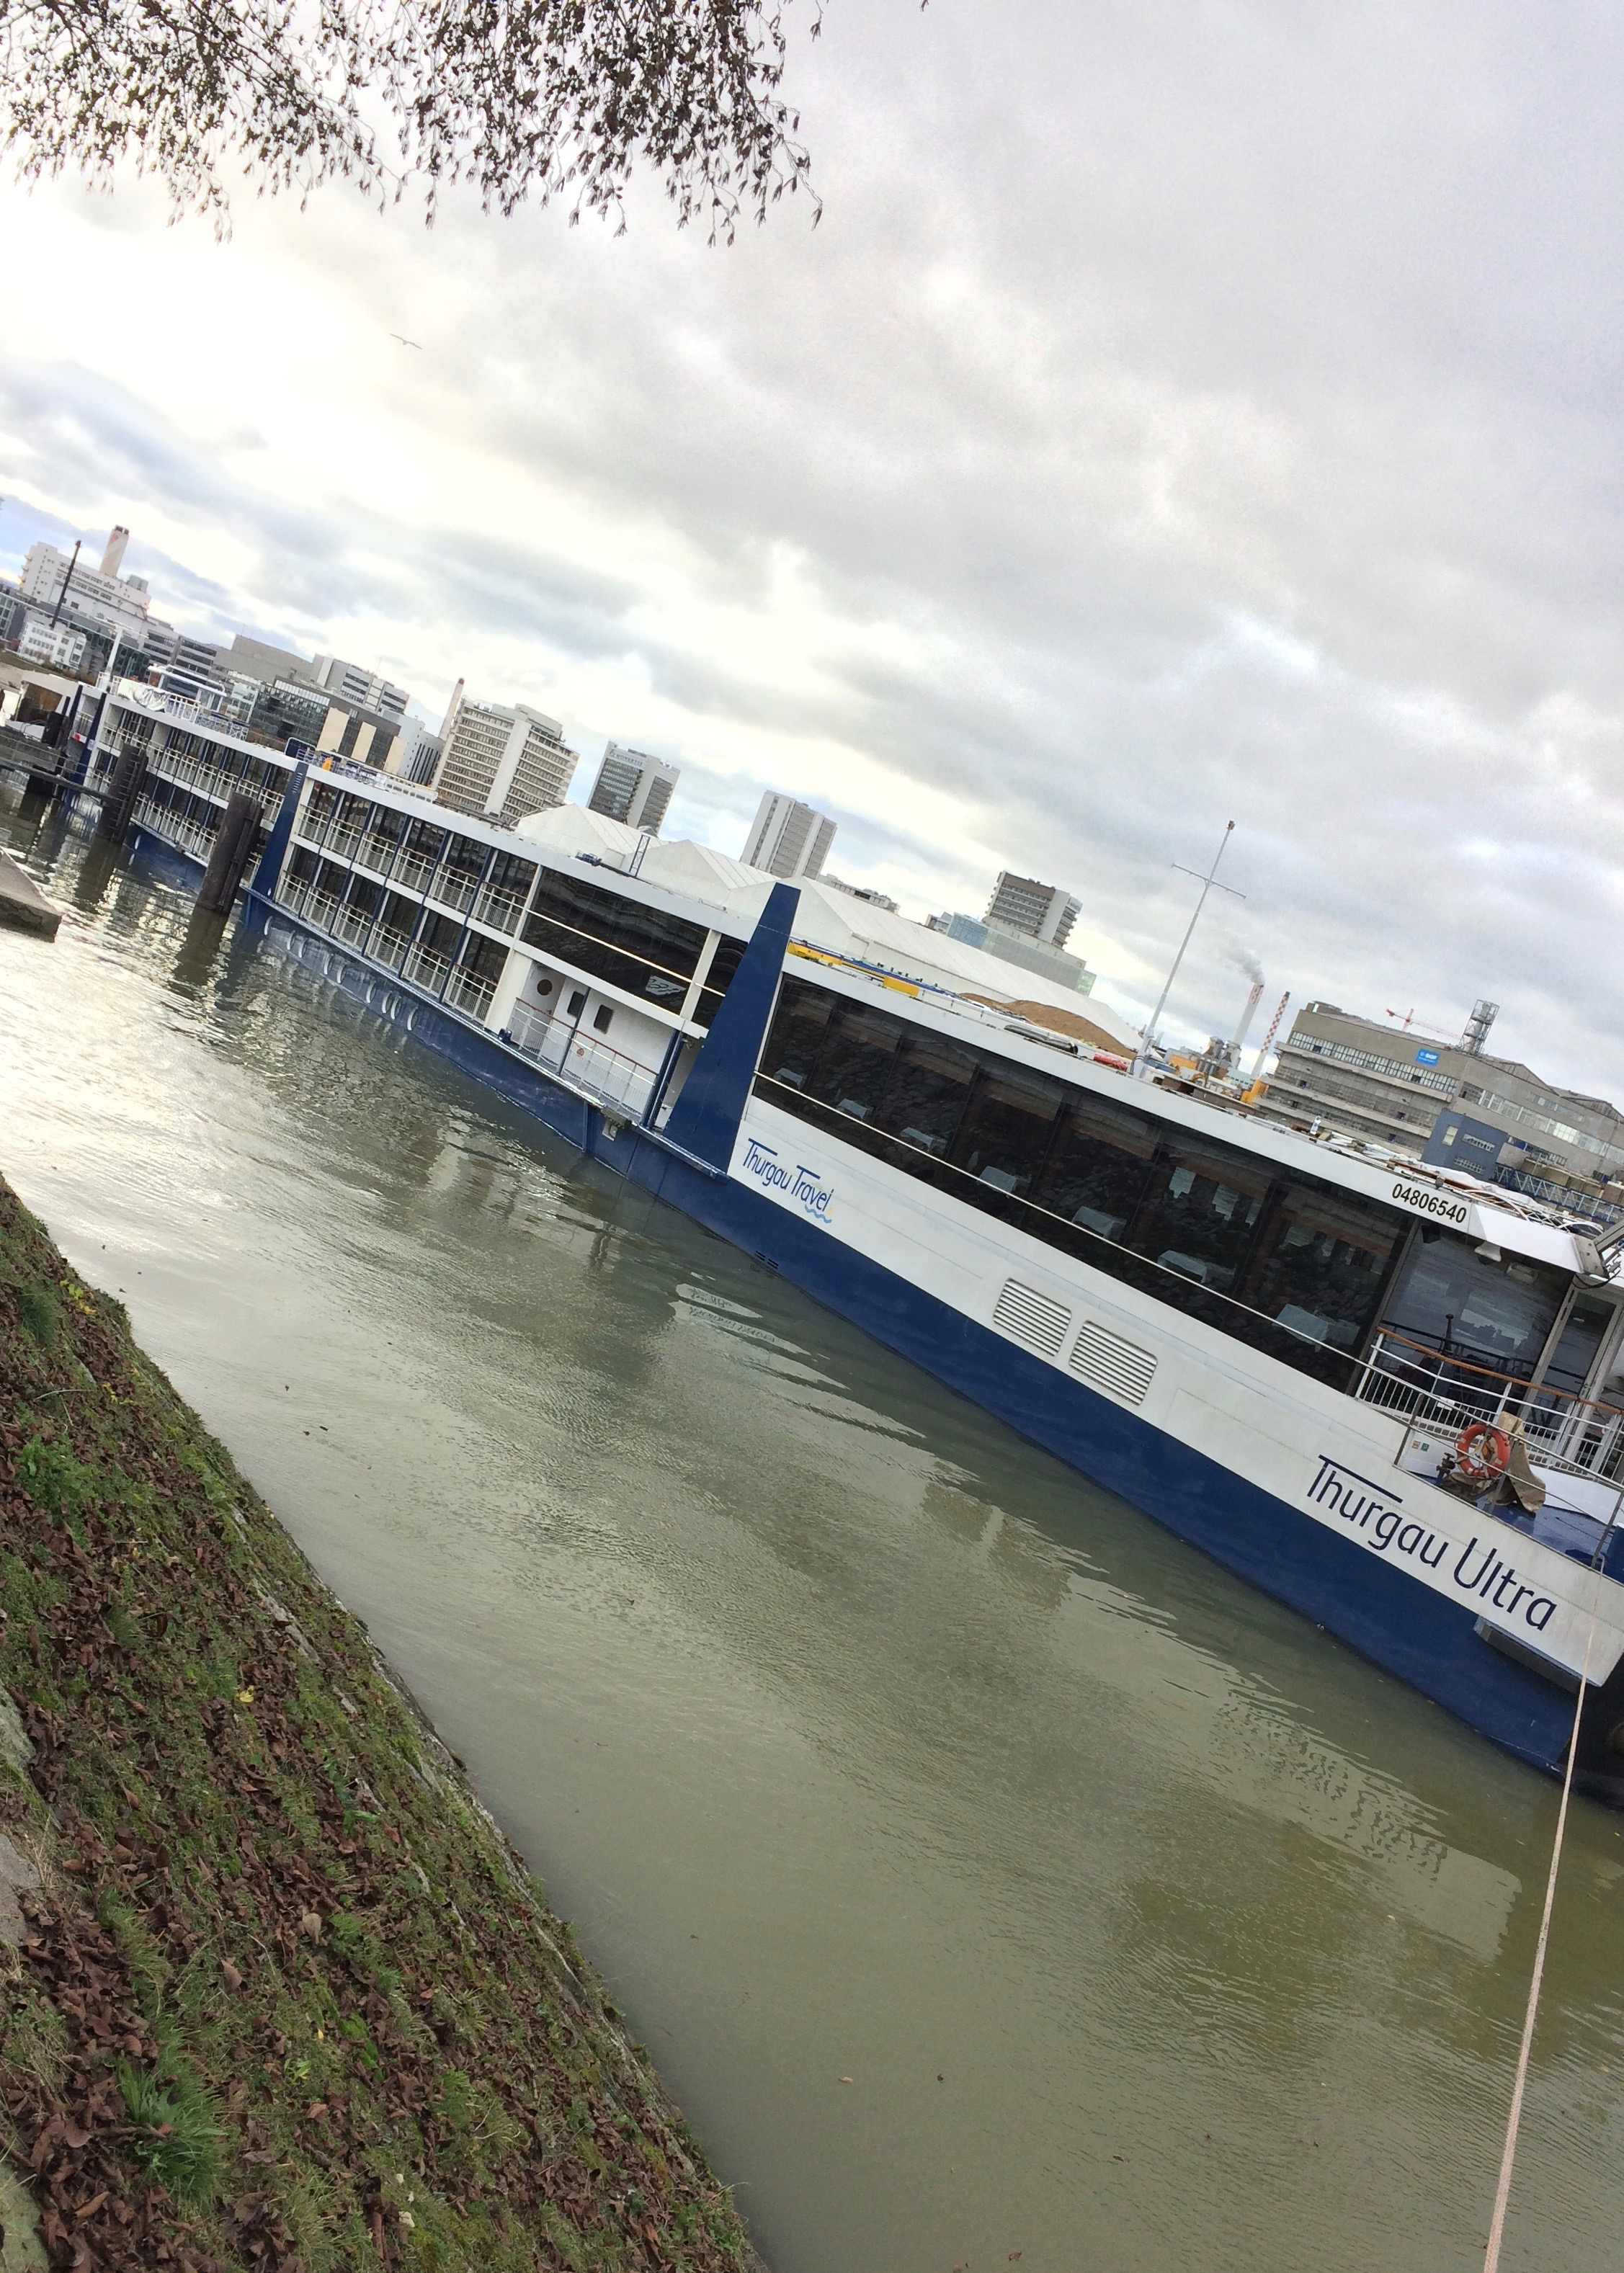 Thurgau Ultra docked in Basel Klybeck river cruise port